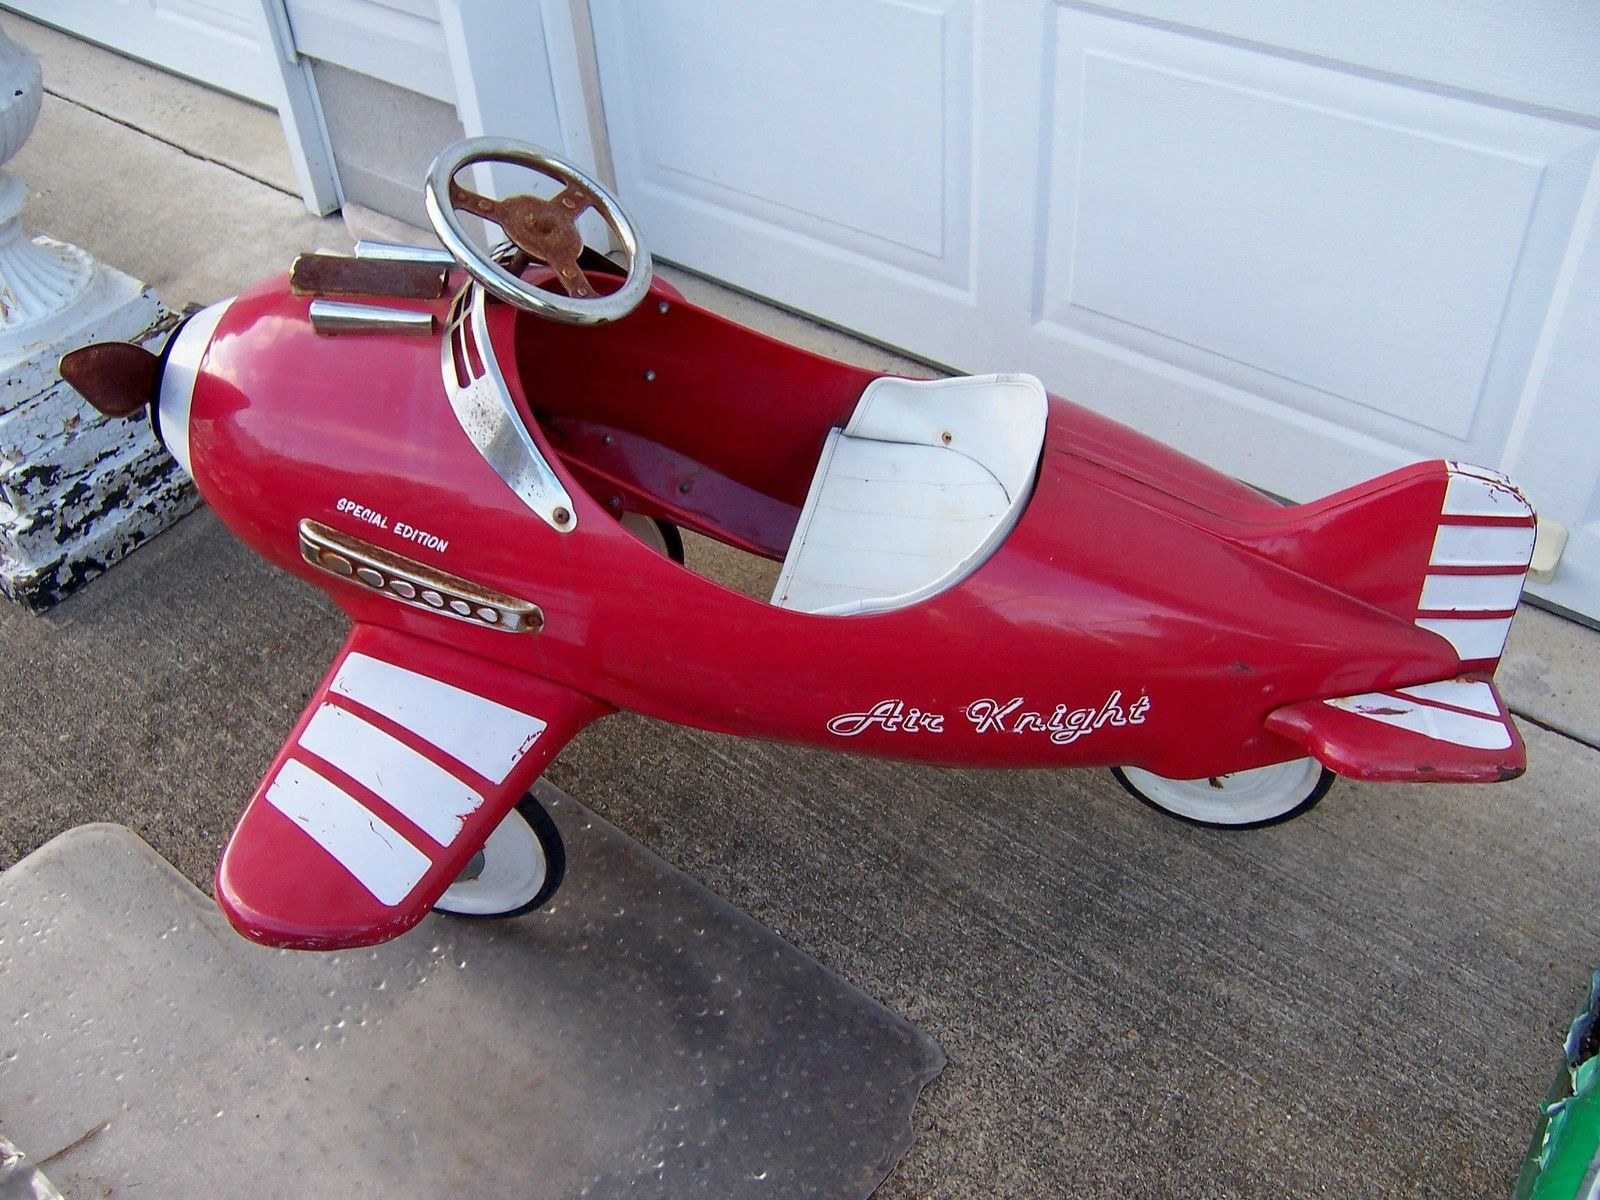 Pedal Car Air Knight Special Edition Pressed Steel Vintage